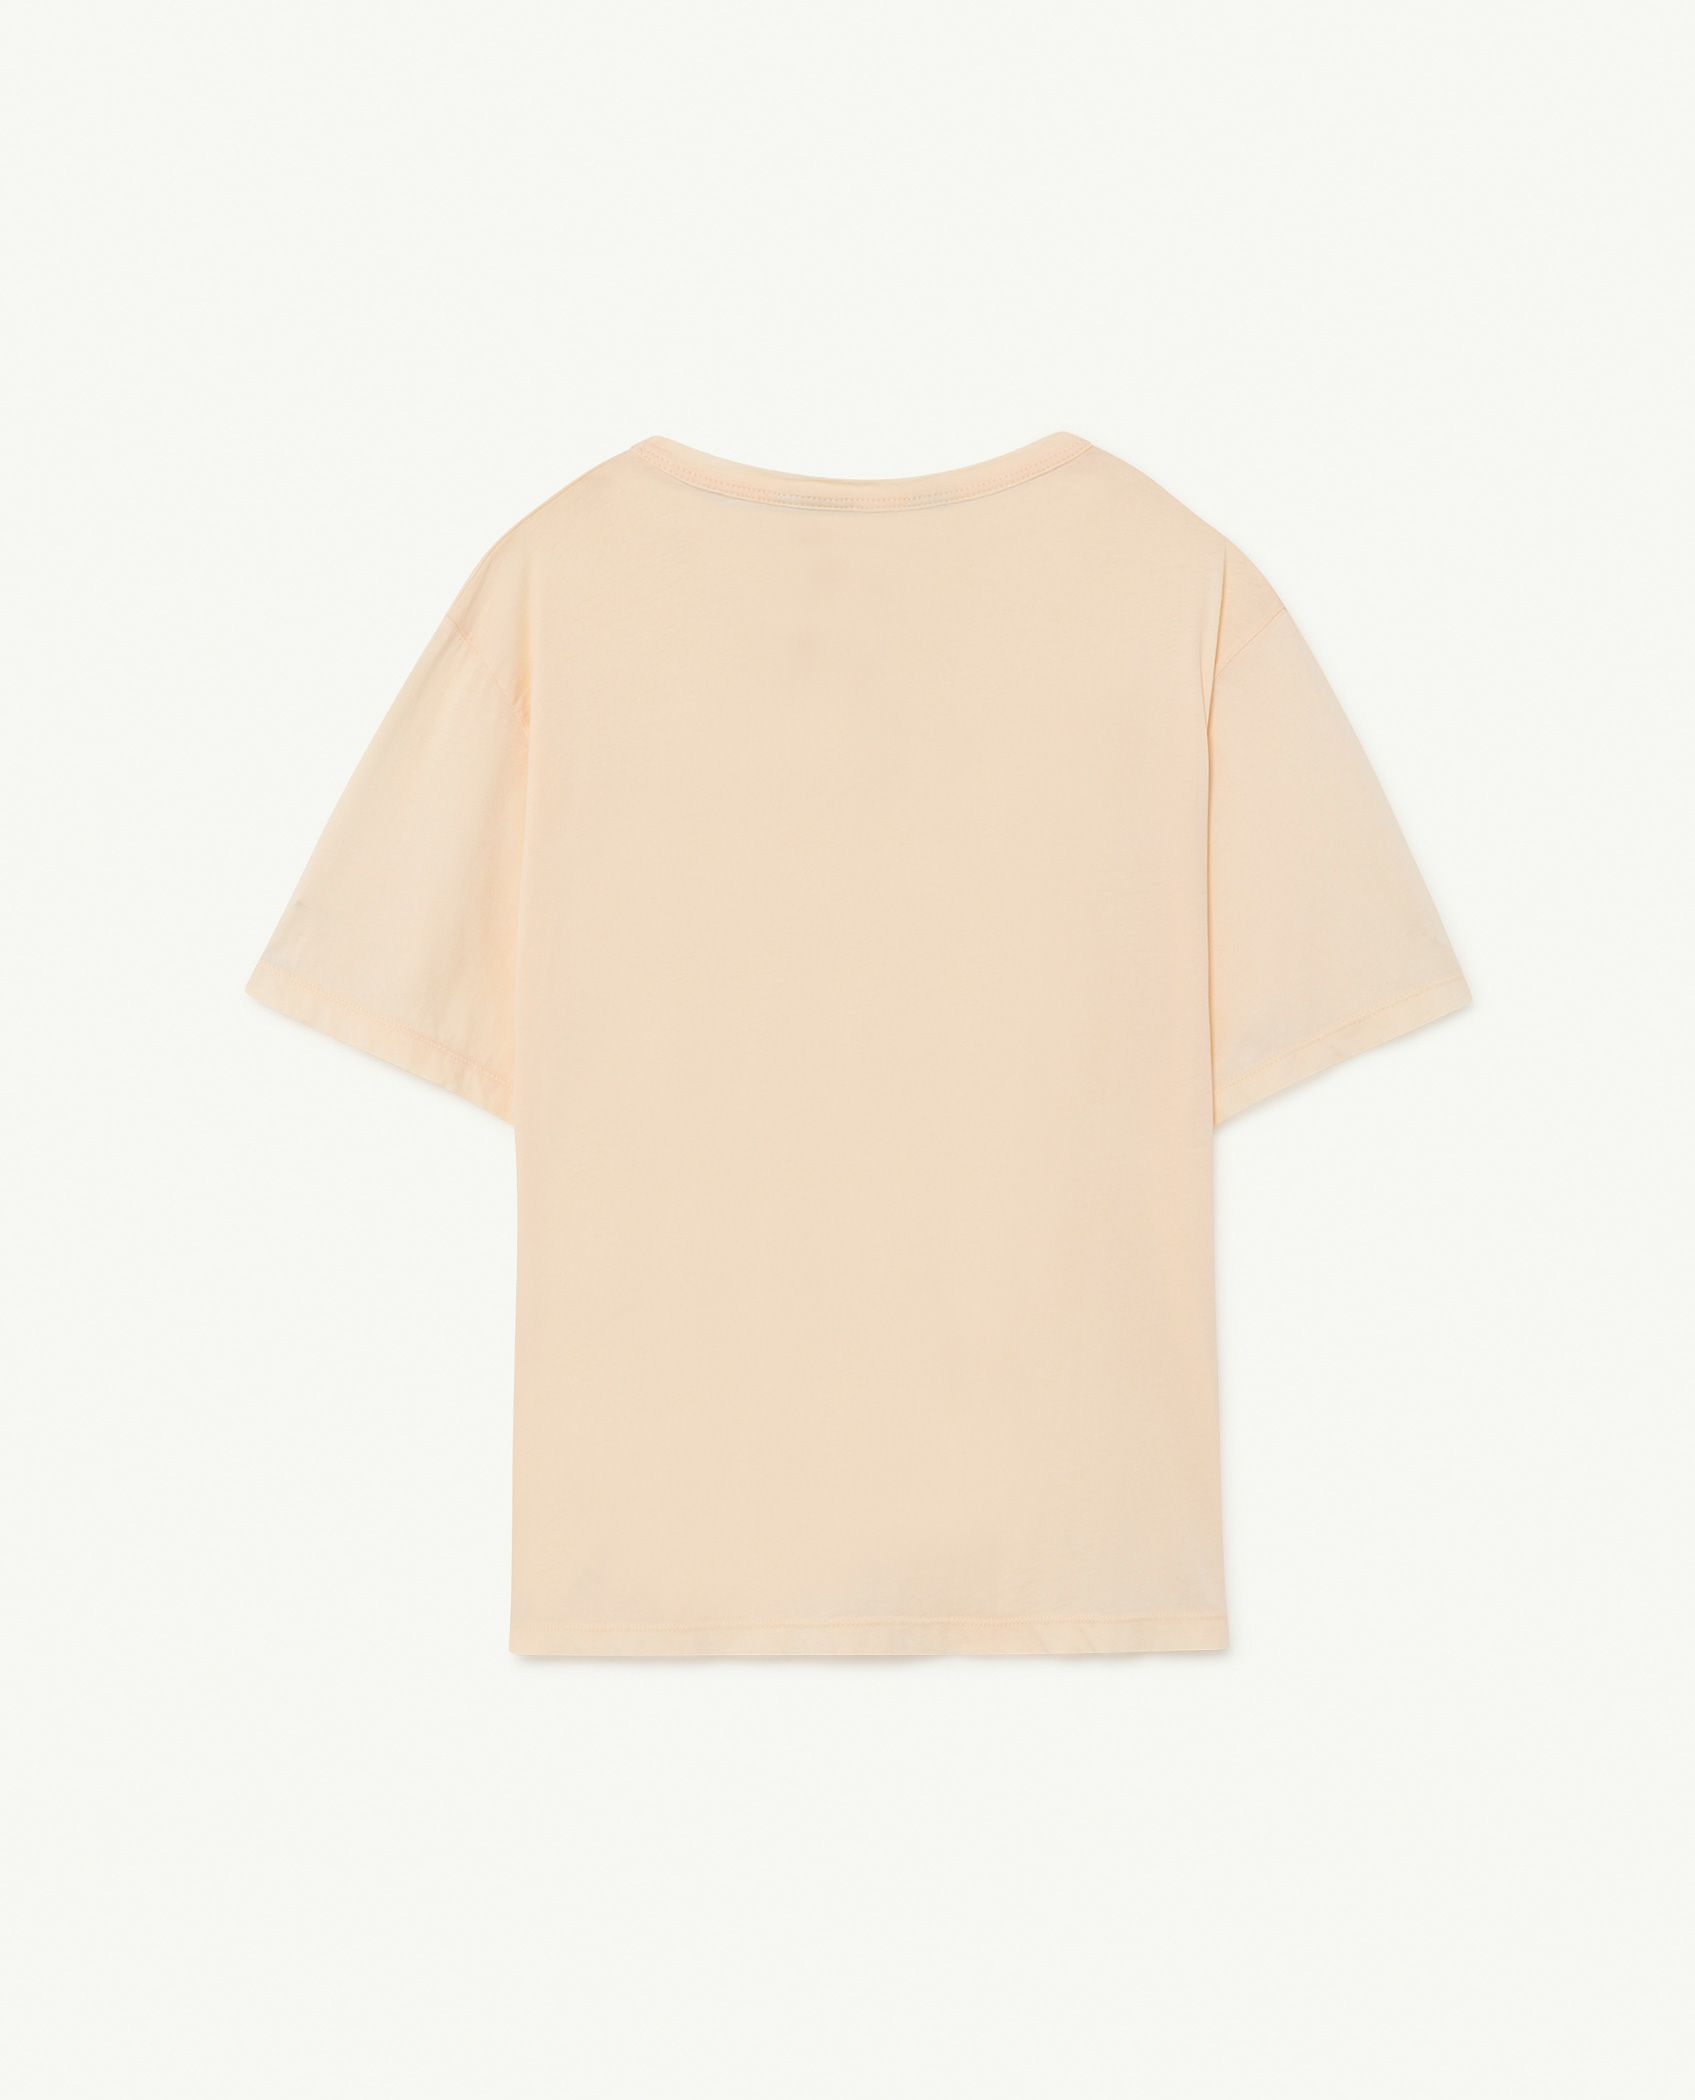 Peachy Mouth Rooster Oversize T-shirt img-2